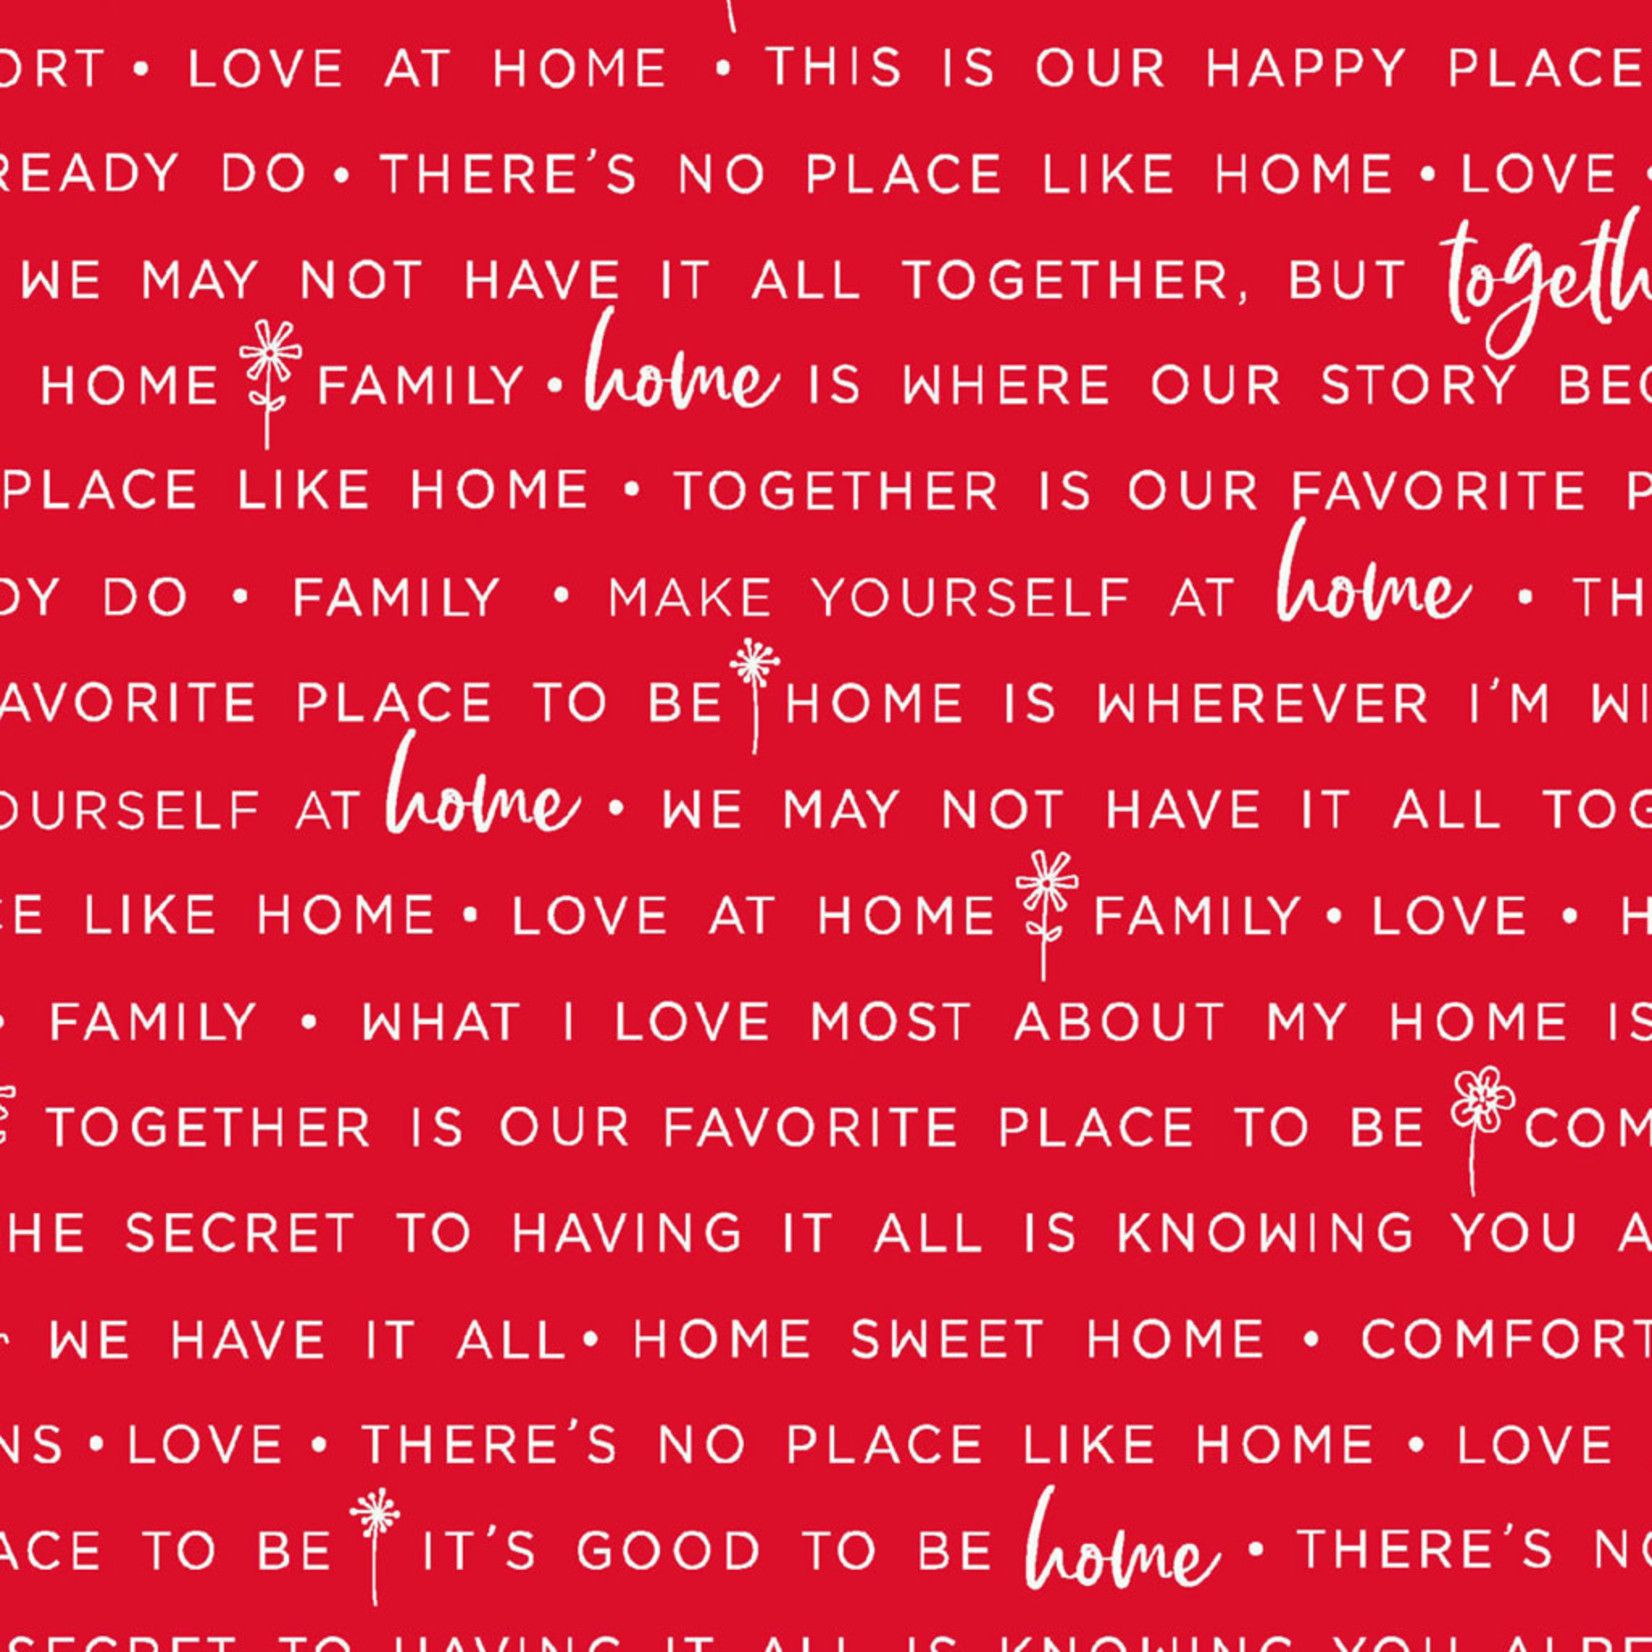 Maywood Studio Make Yourself at Home - Phrases - Red